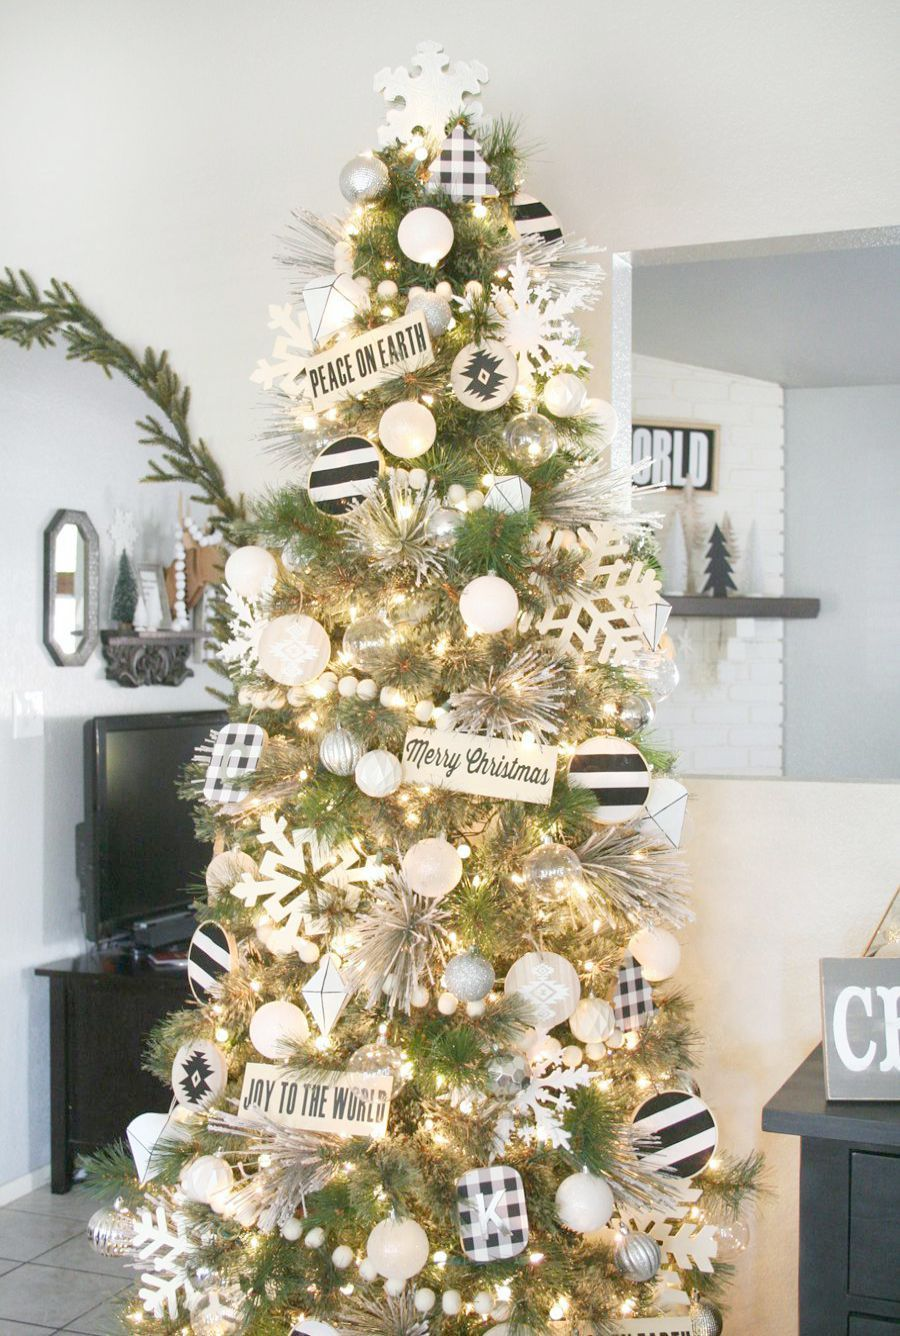 Christmas Tree Skirt Matalan Past White Christmas Tree Decor Pinterest Christmas Tree Decorations Cool Christmas Trees White Christmas Tree Decorations